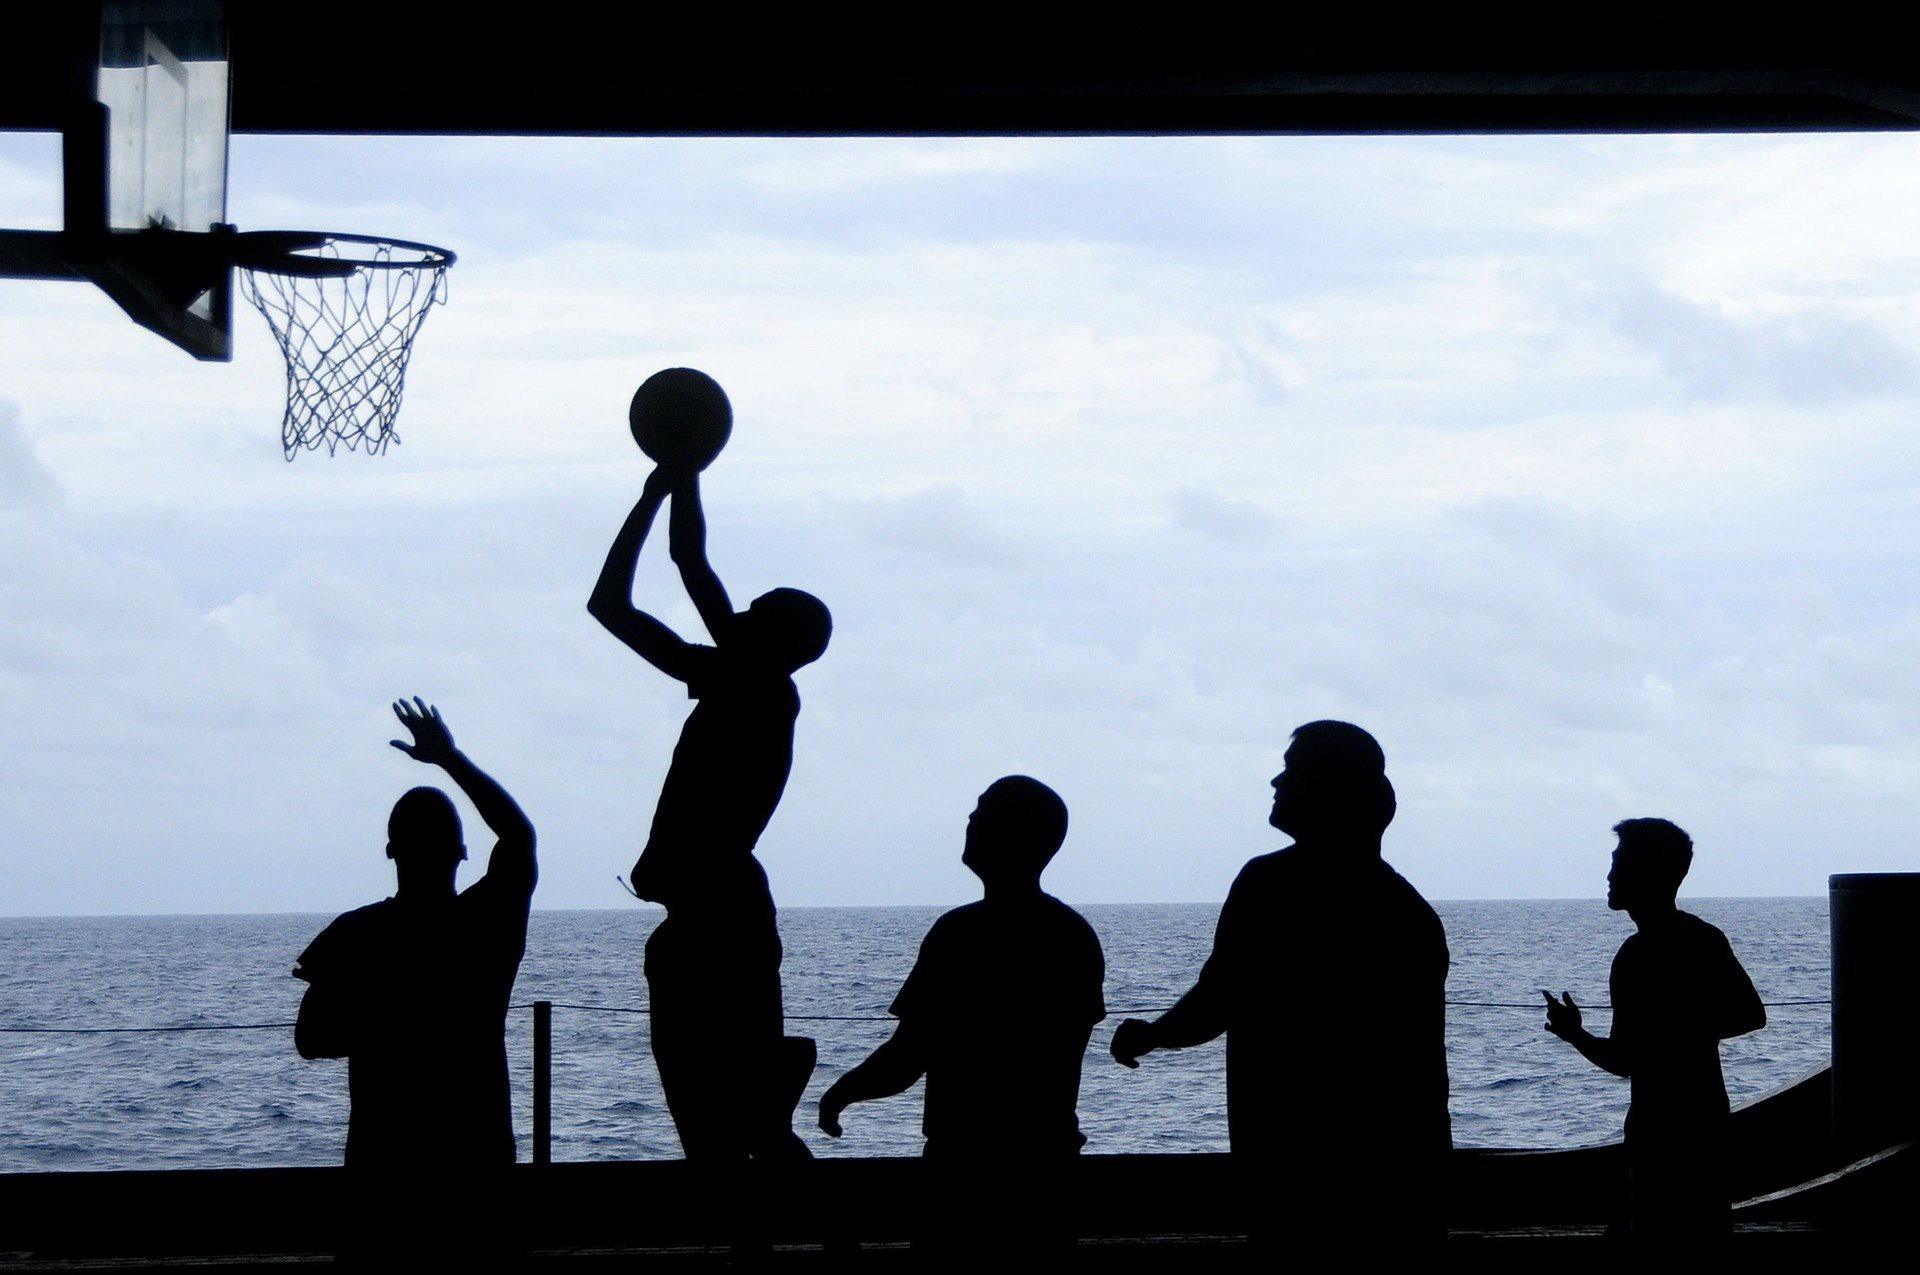 shadow images of basketball game